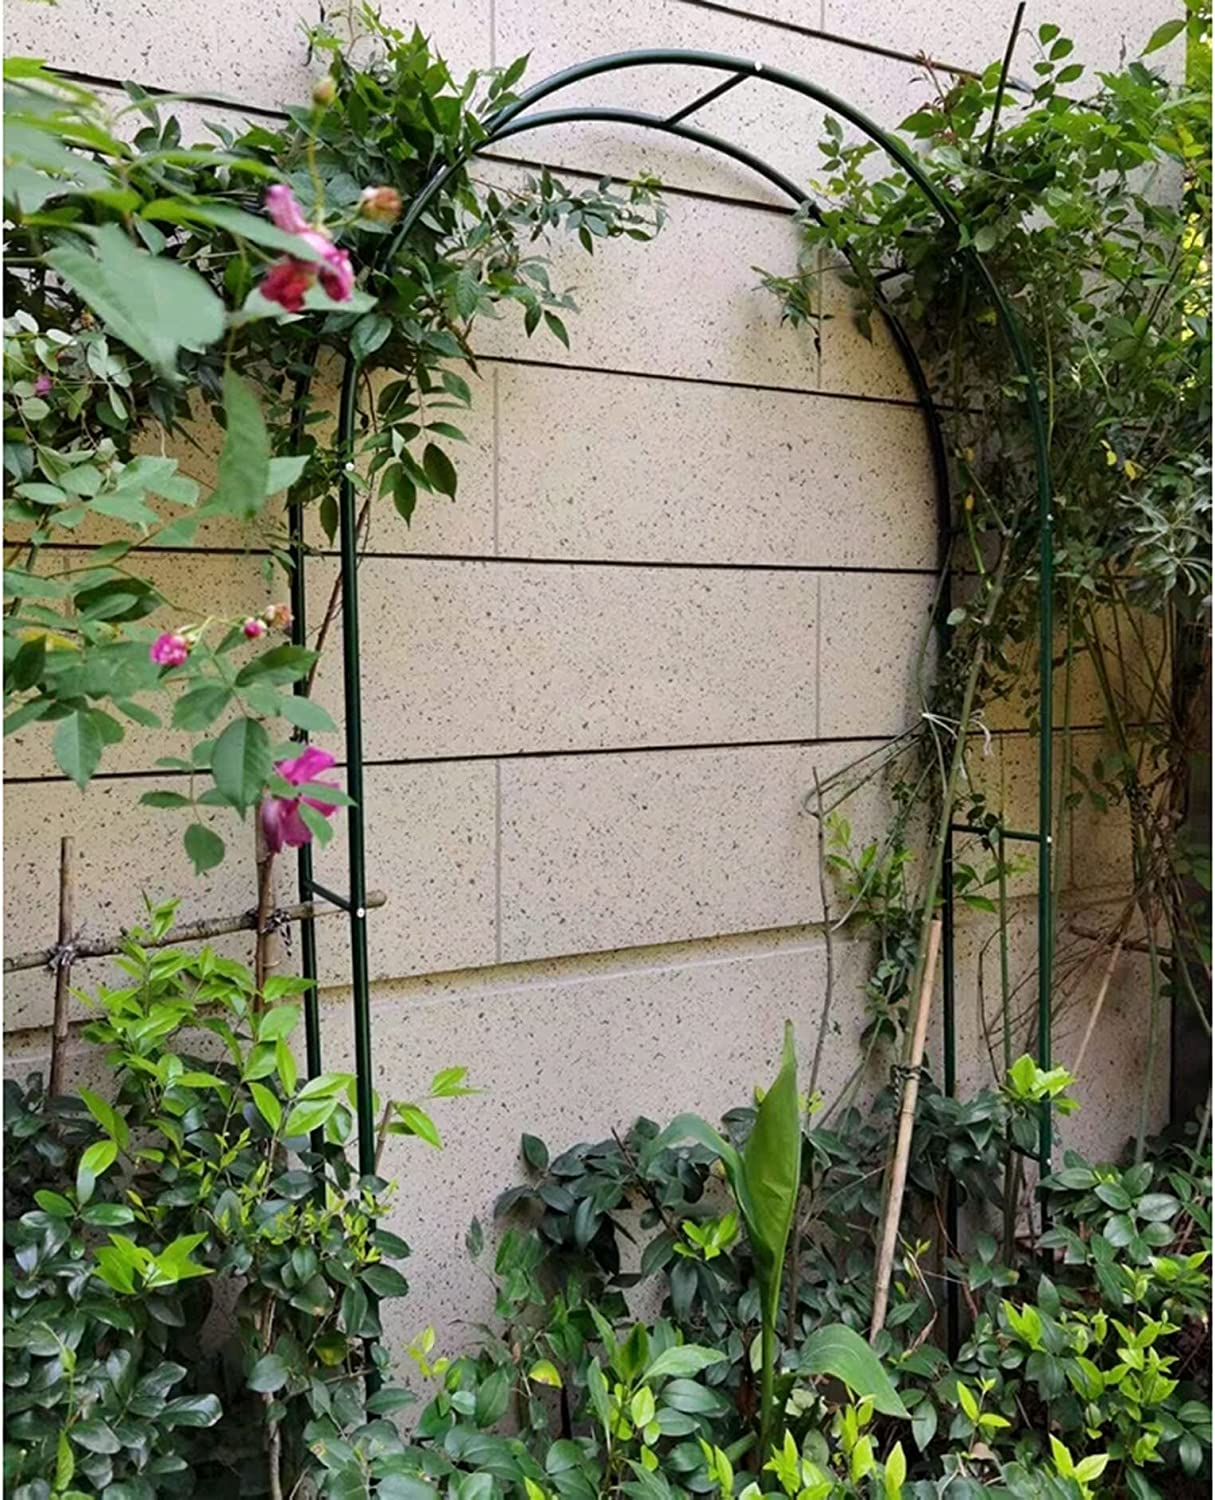 YYHJ Garden Arch Stand Trellis,Outdoor Arches and Arbor,Metal Pergola Archway,for Various Climbing Plant Wedding,Easy to Assemble